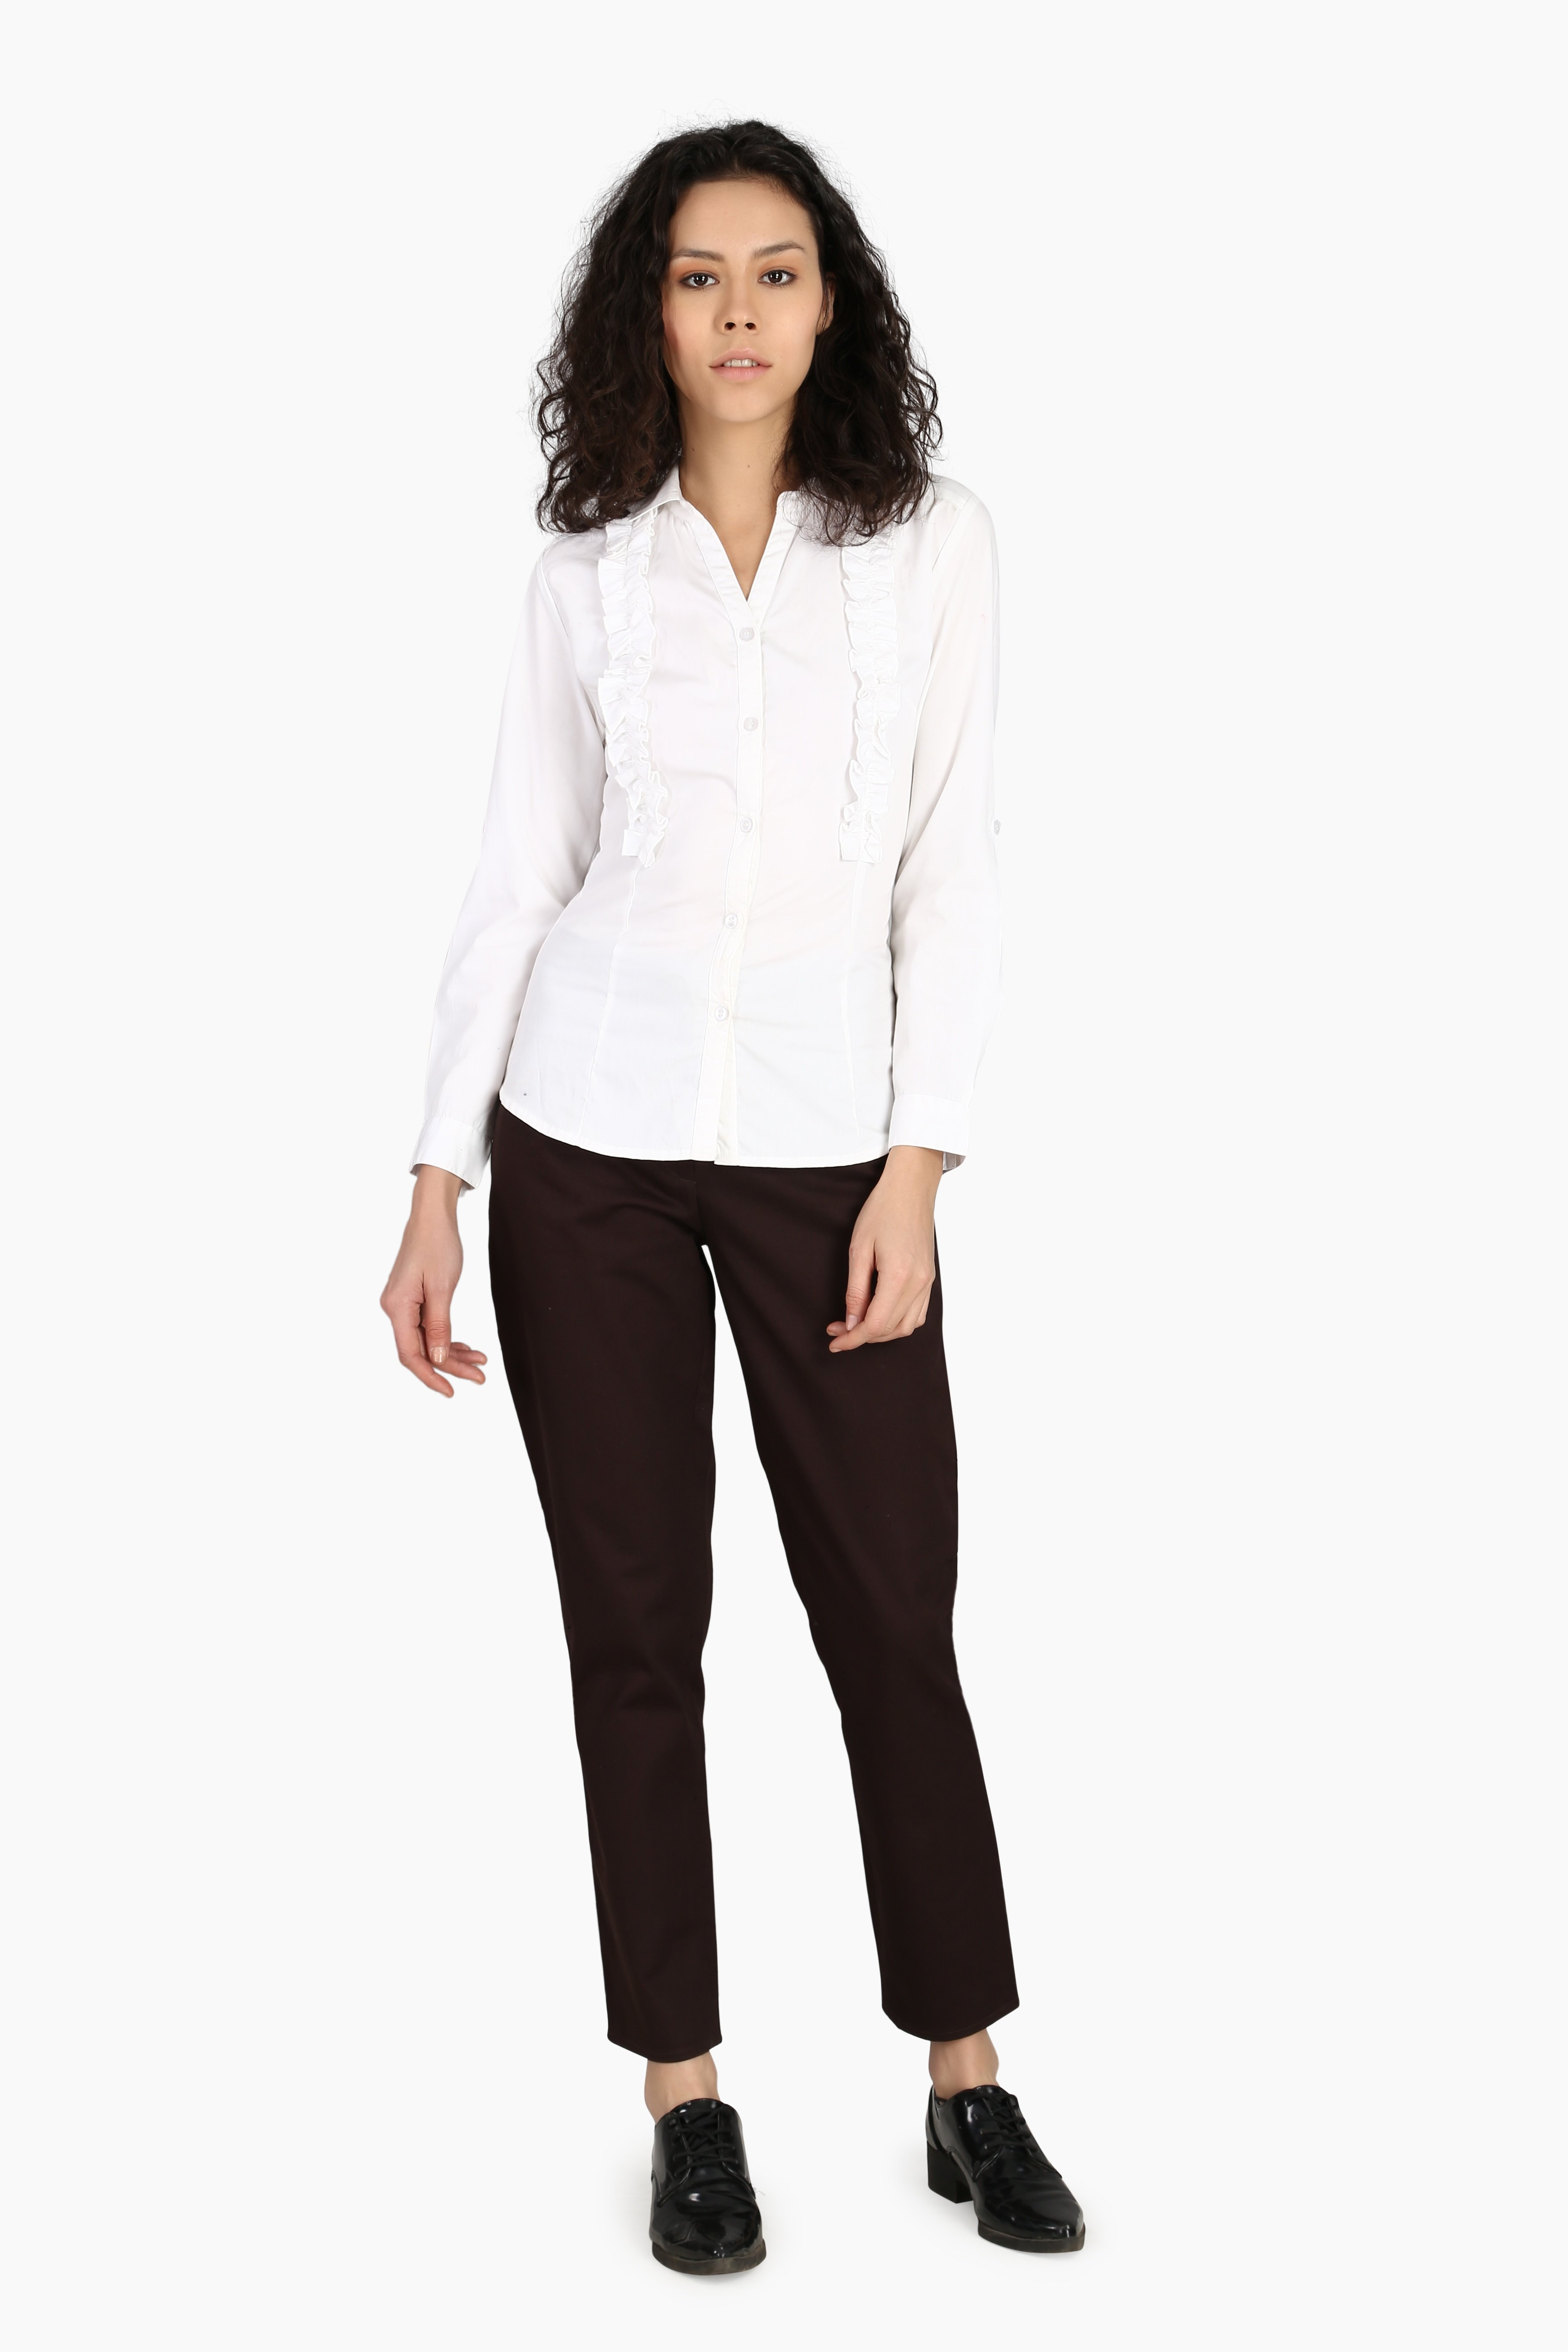 000d67d04f What are some good name suggestions for a women s online clothing ...